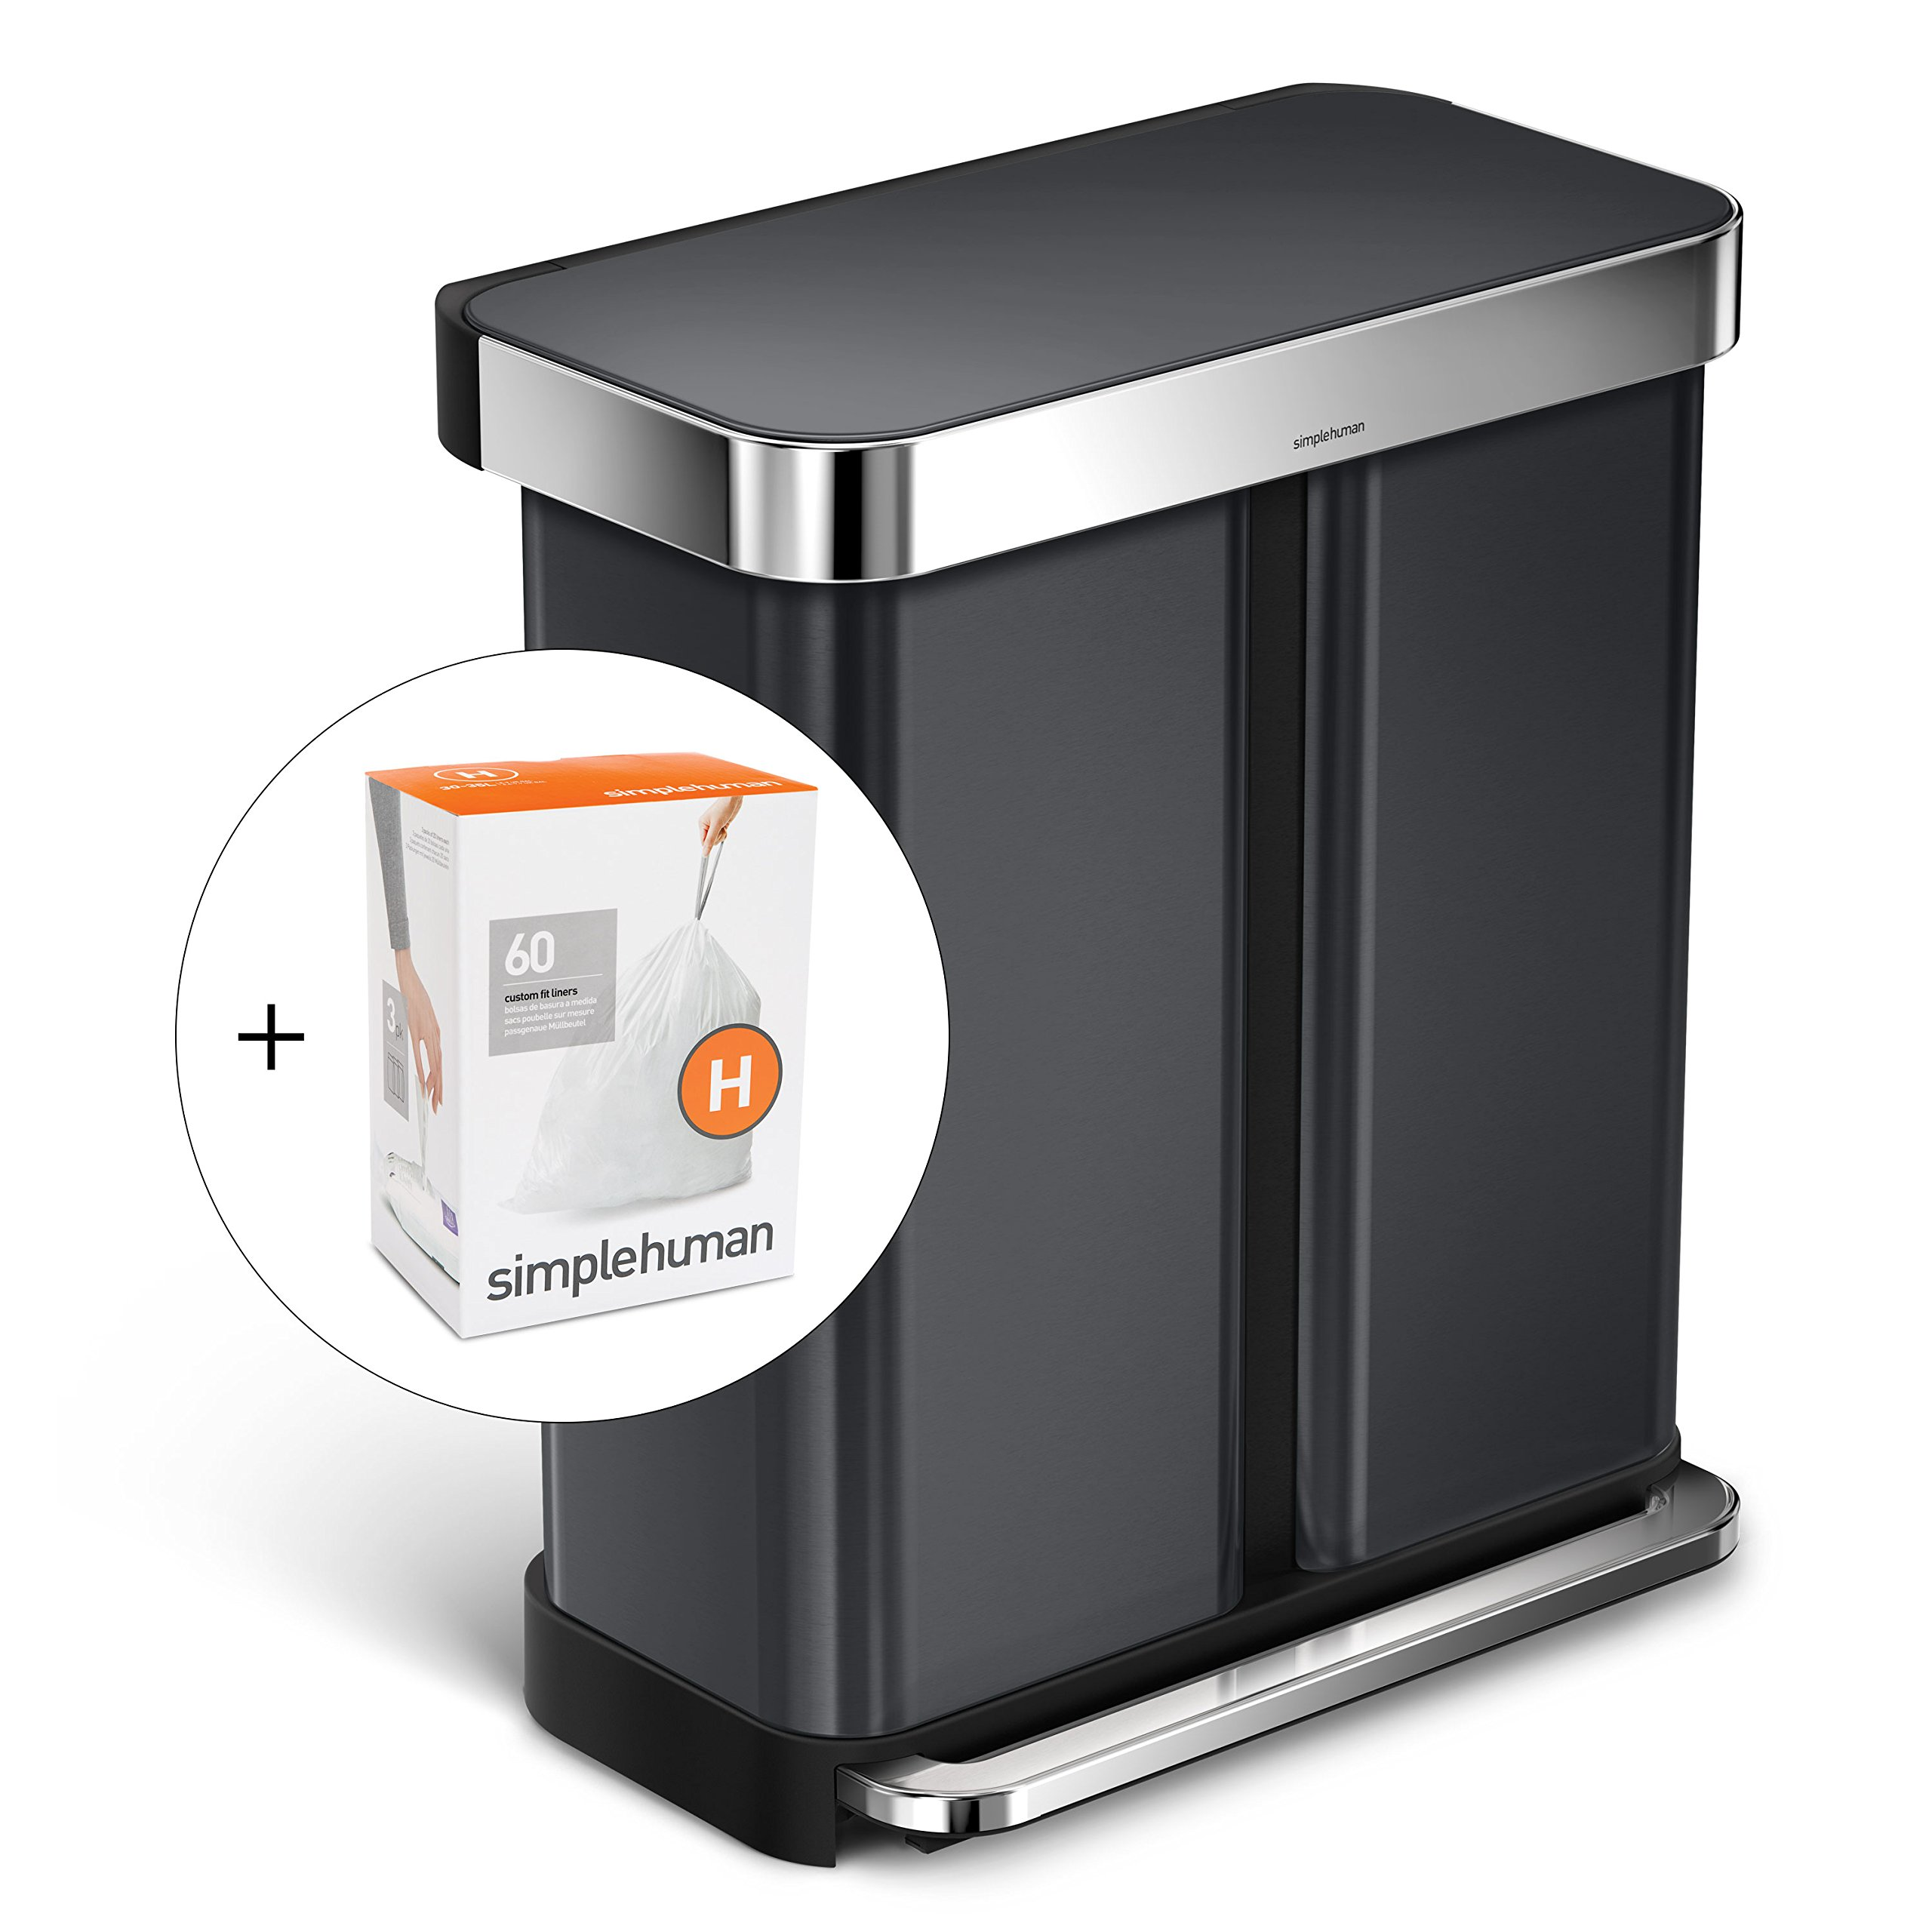 simplehuman 58L Dual Bucket Rectangular Recycling Step Trash Can with Liner Pocket, Black Stainless Steel, with 60 pack custom fit liner code H